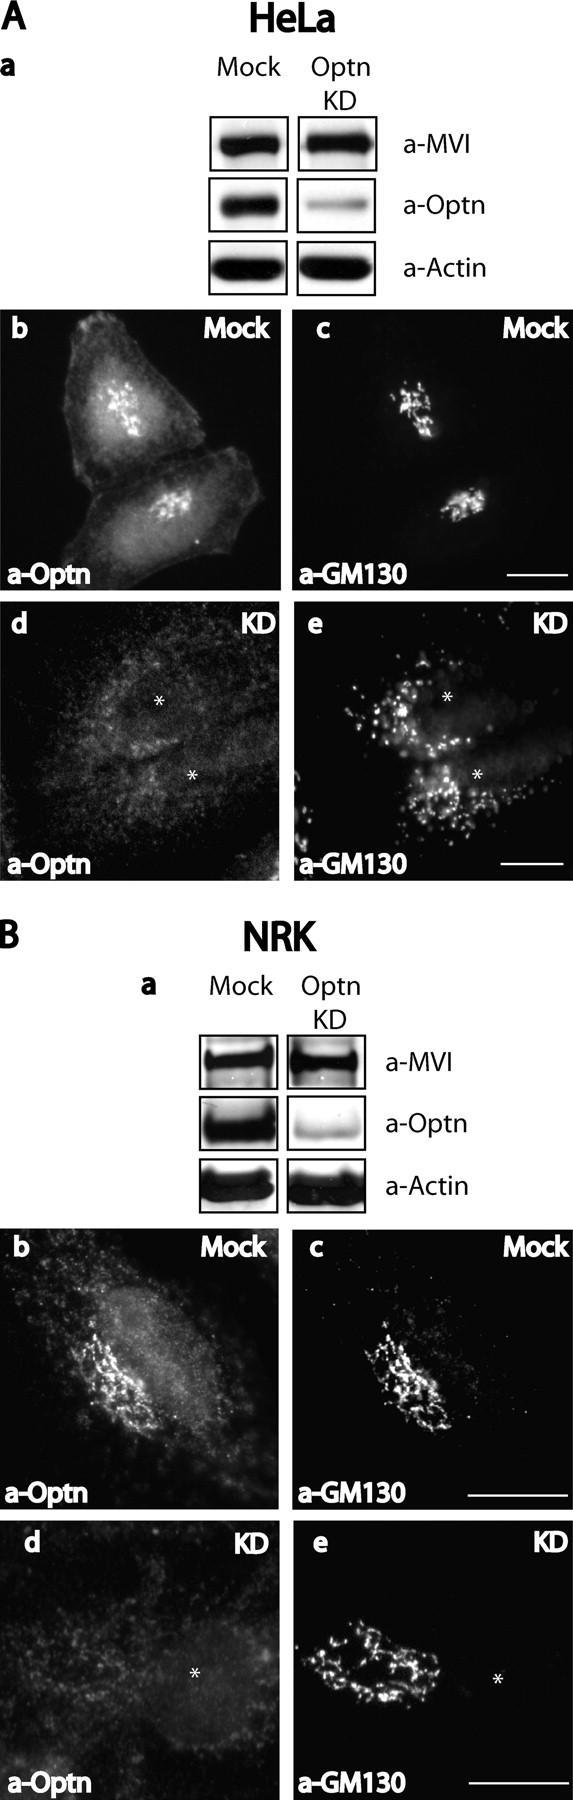 Optineurin is depleted from NRK and HeLa cells using siRNA. HeLa (A) or NRK (B) cells were either mock transfected with water or transfected twice at 48-h intervals with siRNA specific to optineurin. After 4 d cells were blotted and probed with antibodies to myosin VI, optineurin, or actin (A, a and B, a). In a parallel experiment mock-transfected, siRNA-transfected NRK, or HeLa cells were used for immunofluorescence and double labeled with antibodies to optineurin (A, b and d; B, b and d) and GM130 (A, c and e; B, c and e). Bars, 10 μm.